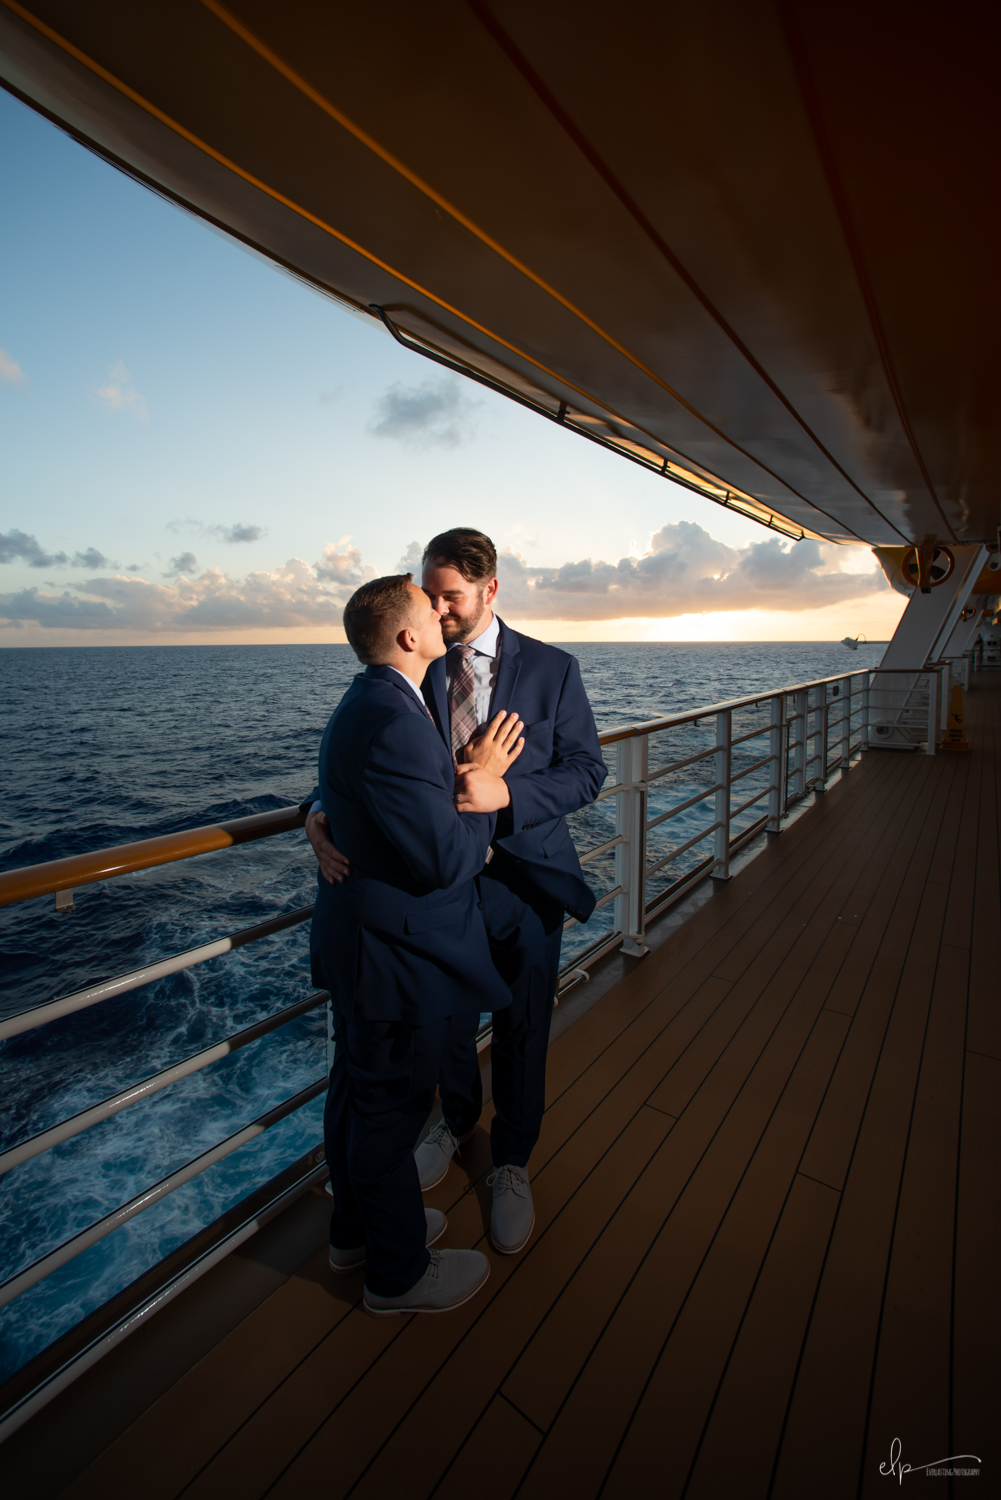 Disney-Cruise-Line-Wedding-Photography-2.jpg